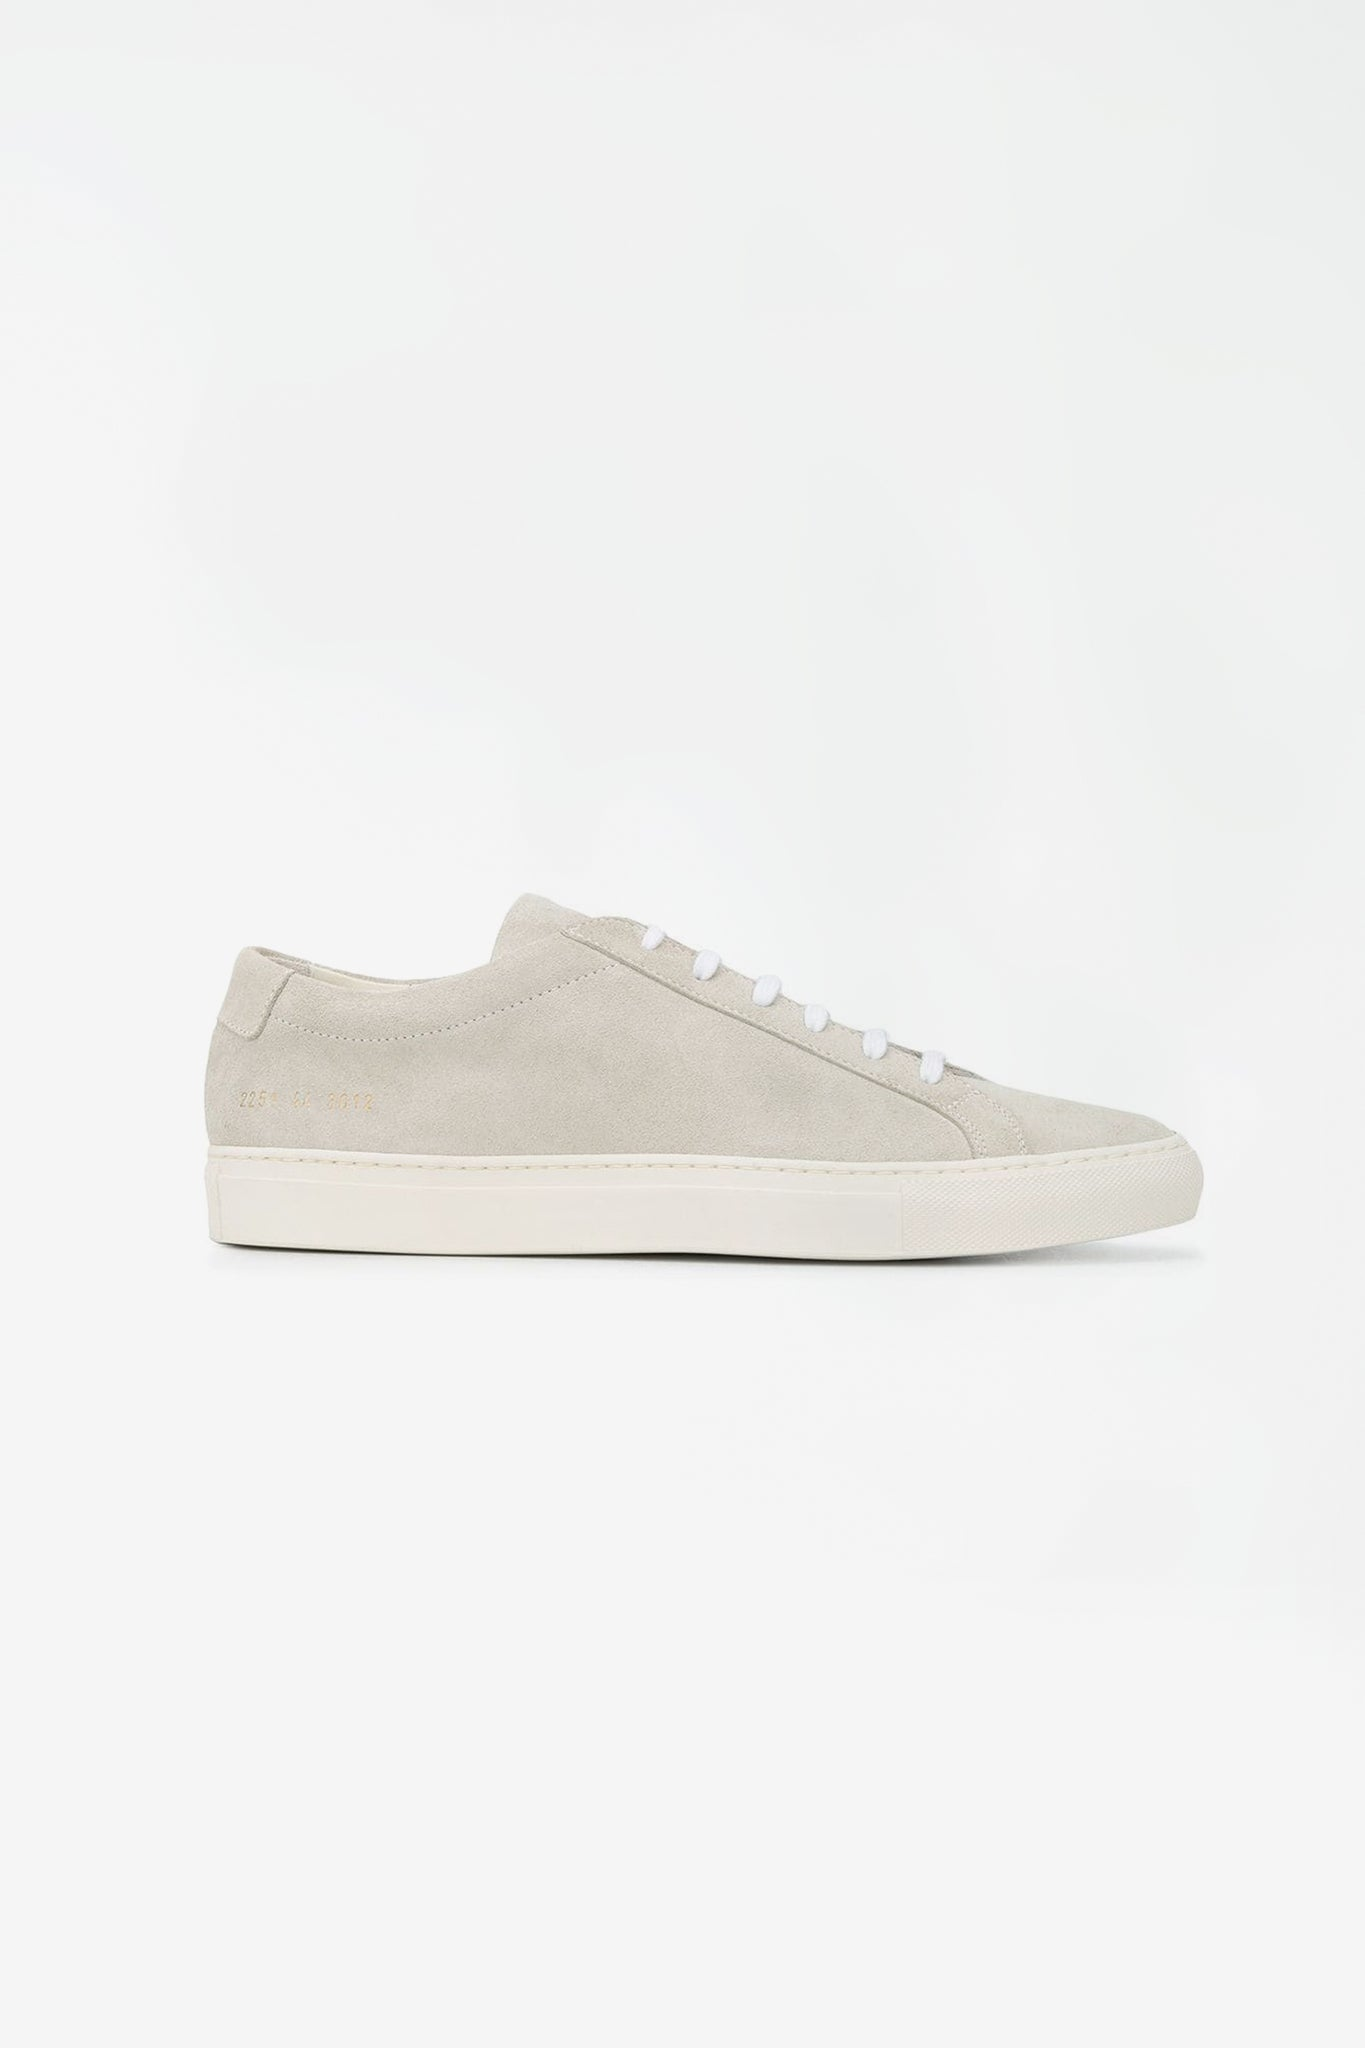 Original Achilles low suede contrast sole off white